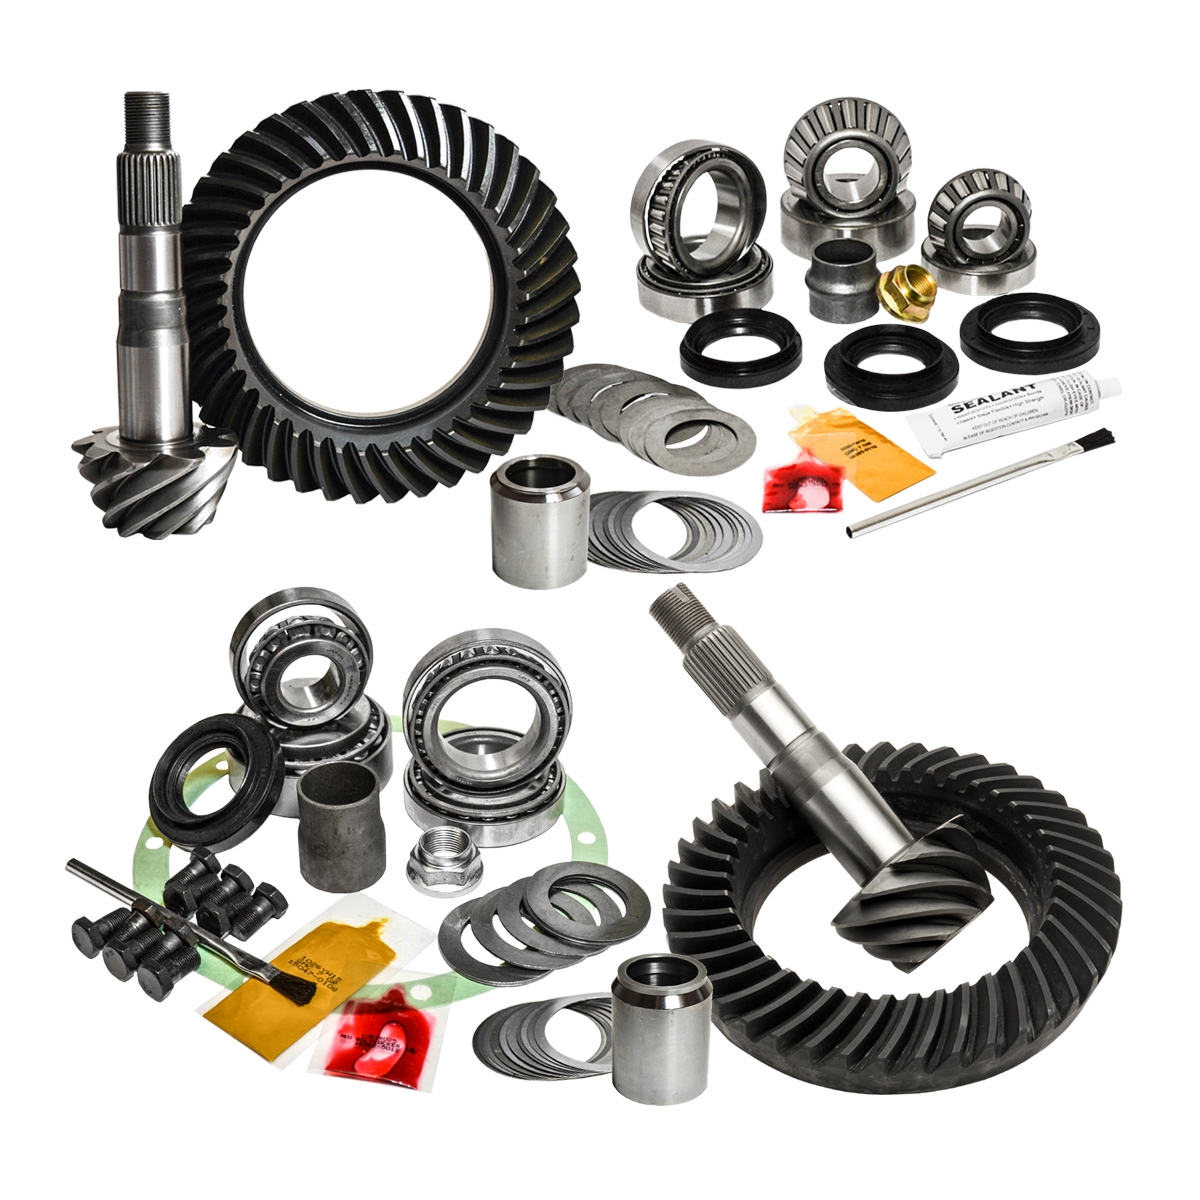 VMN offers Nitro complete regearing kits composed of front and rear ring with pinion